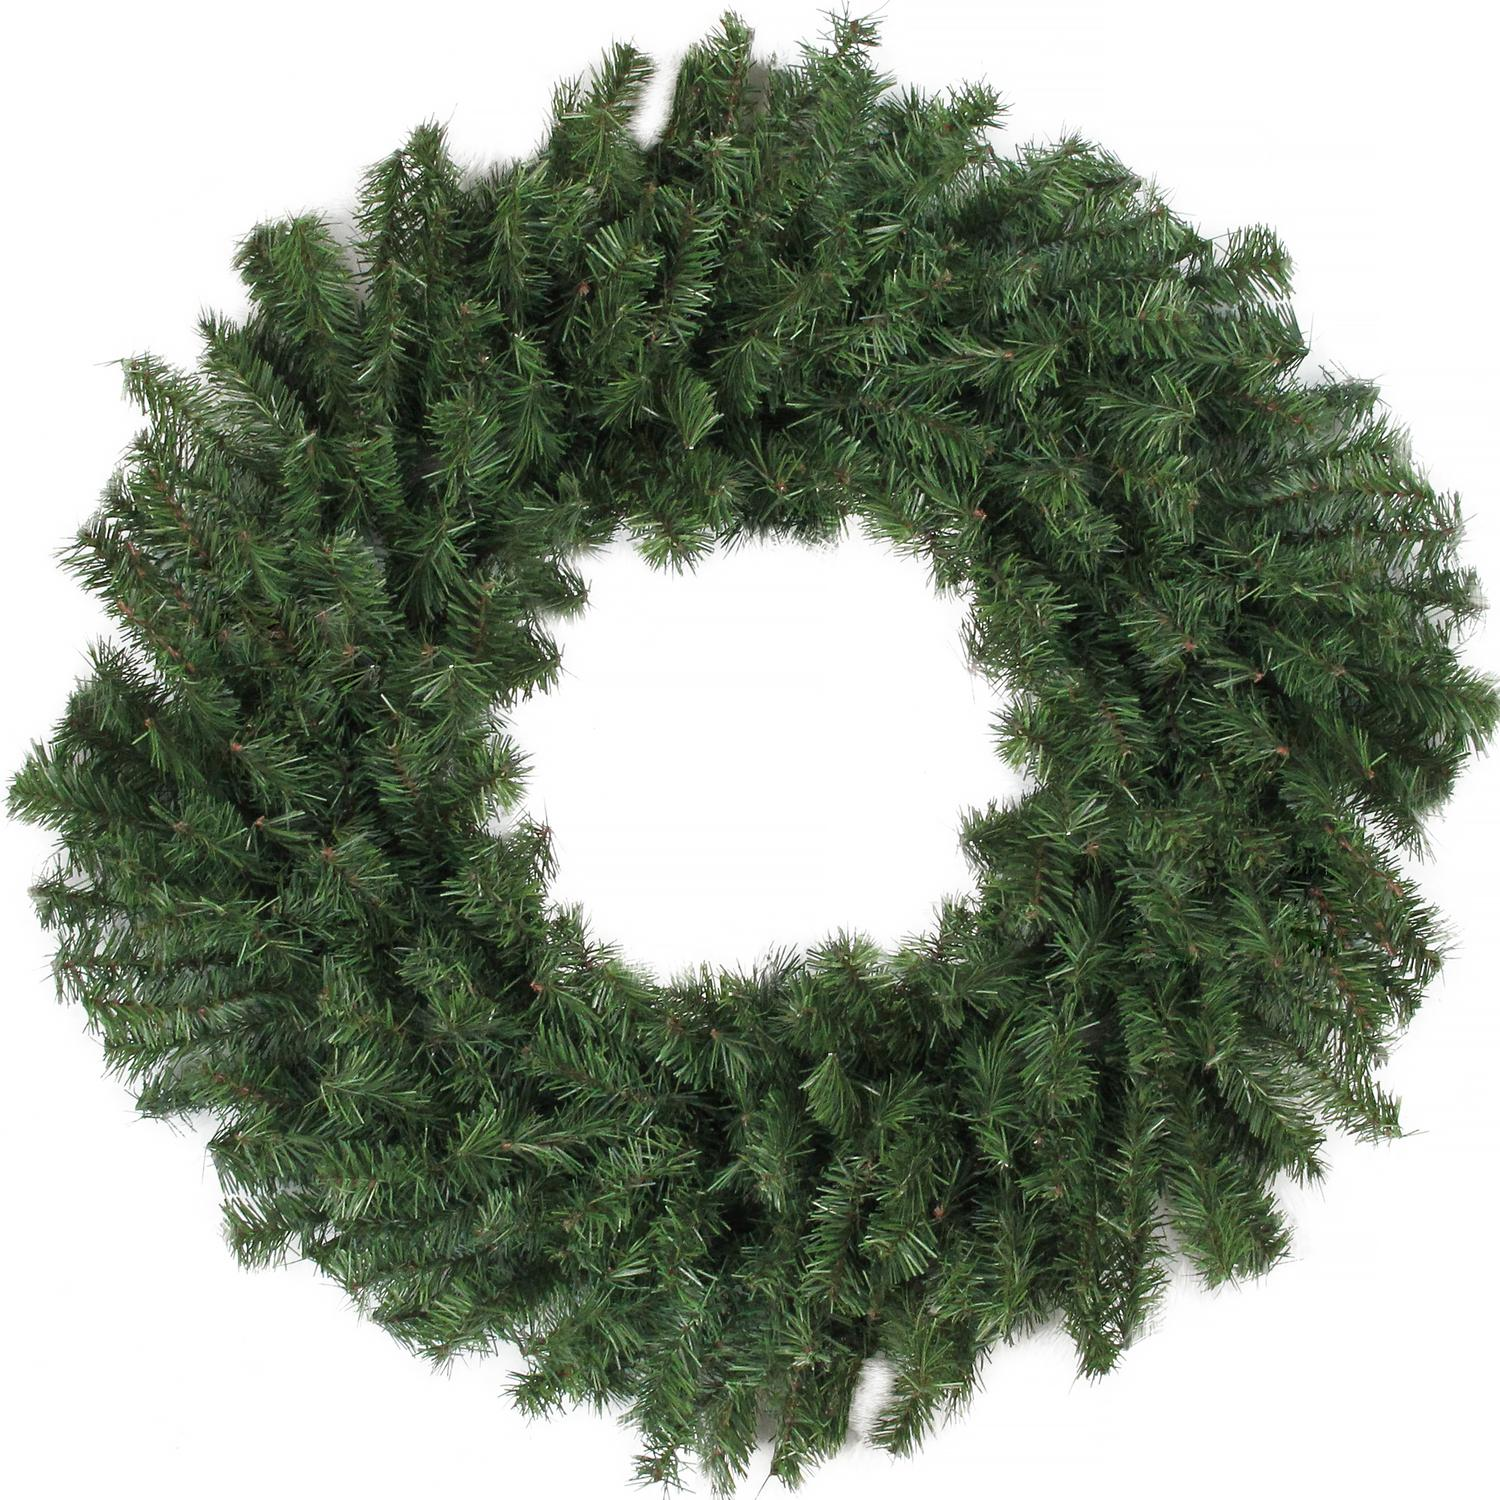 Northlight Canadian Pine Artificial Unlit Christmas Wreath